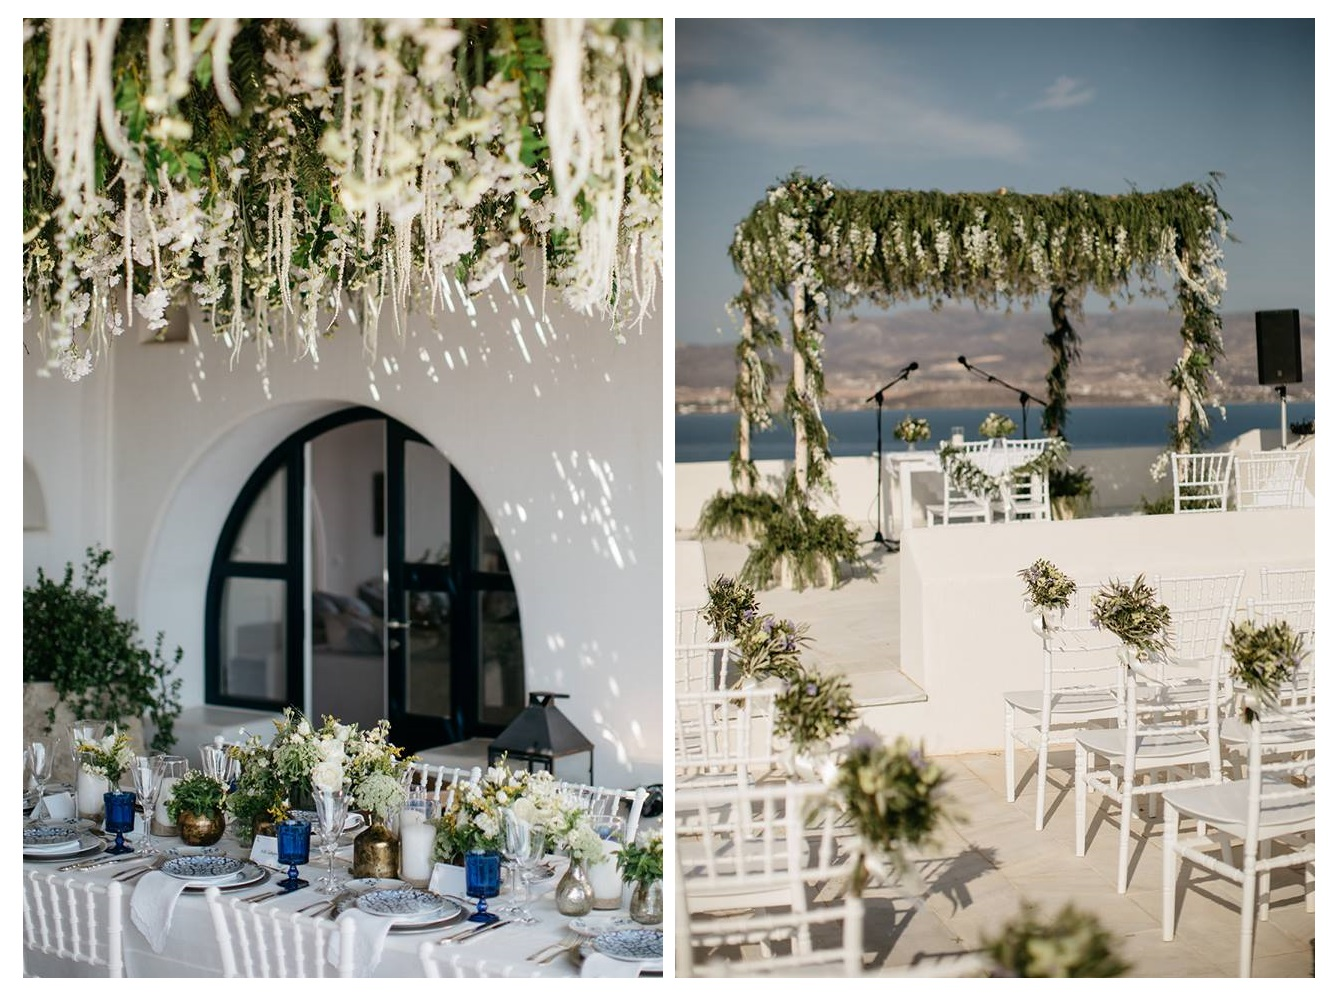 Elegant Greek folk wedding in Antiparos by Rock Paper Scissors Events